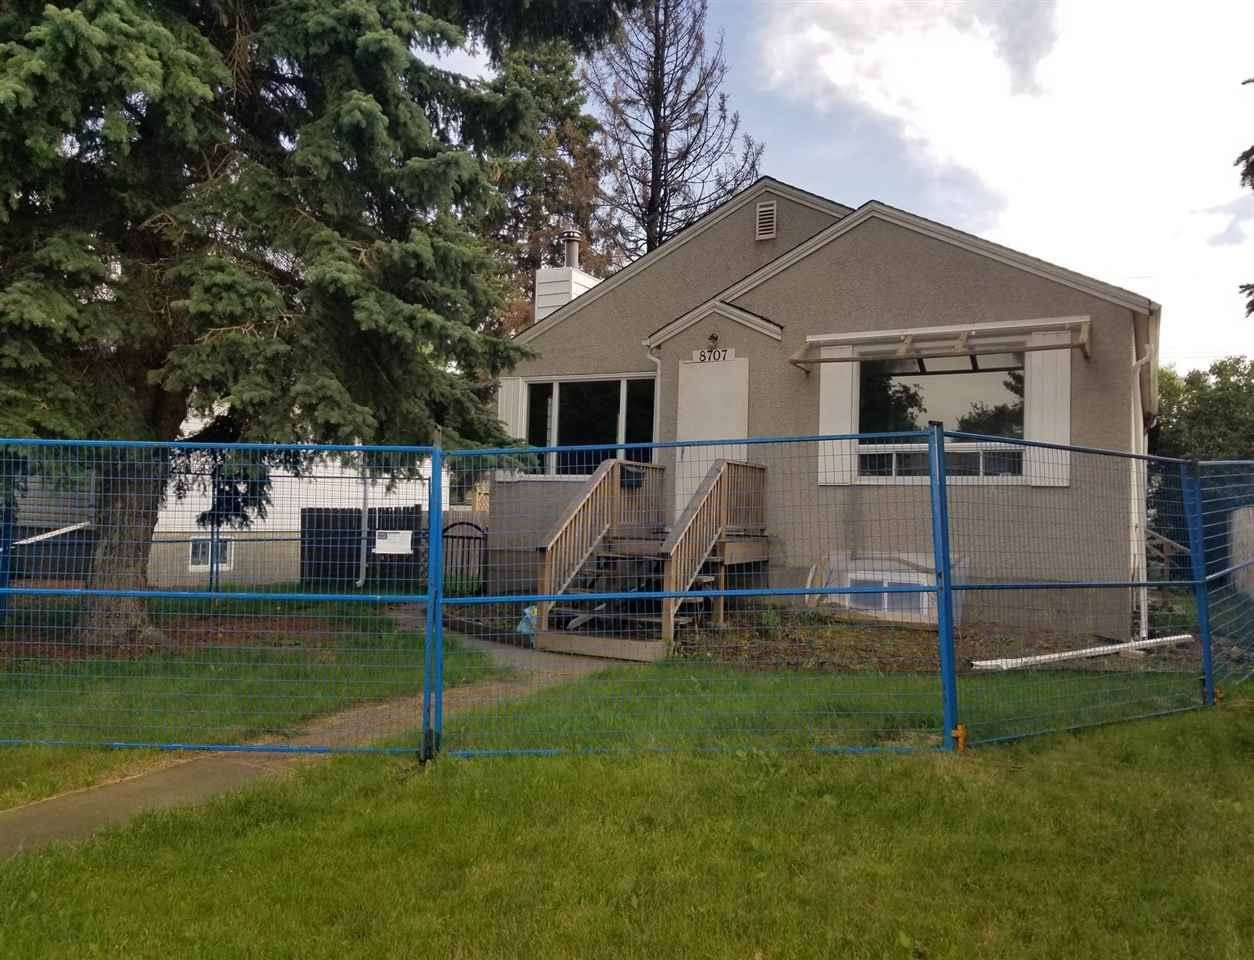 House for sale at 8707 89 Ave Nw Edmonton Alberta - MLS: E4184074